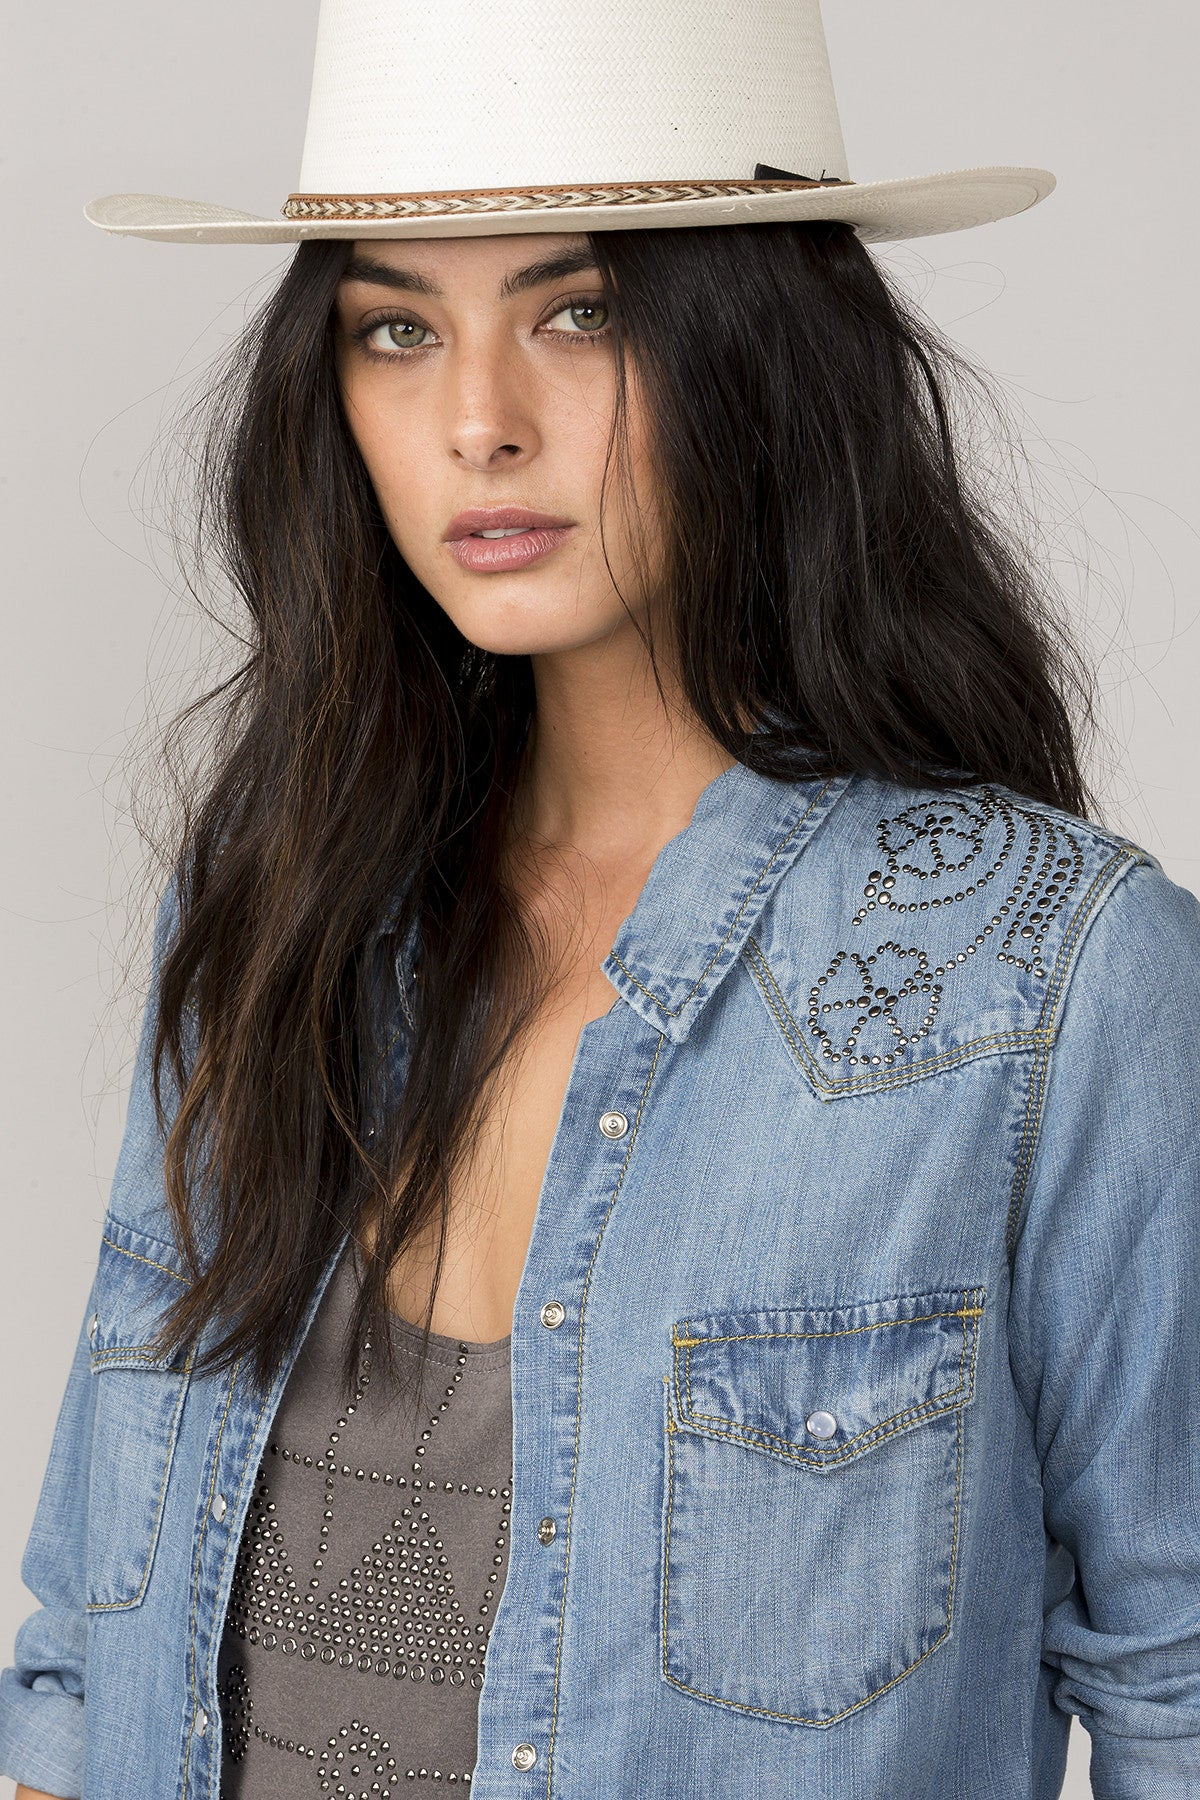 Connect The Dots Denim Top